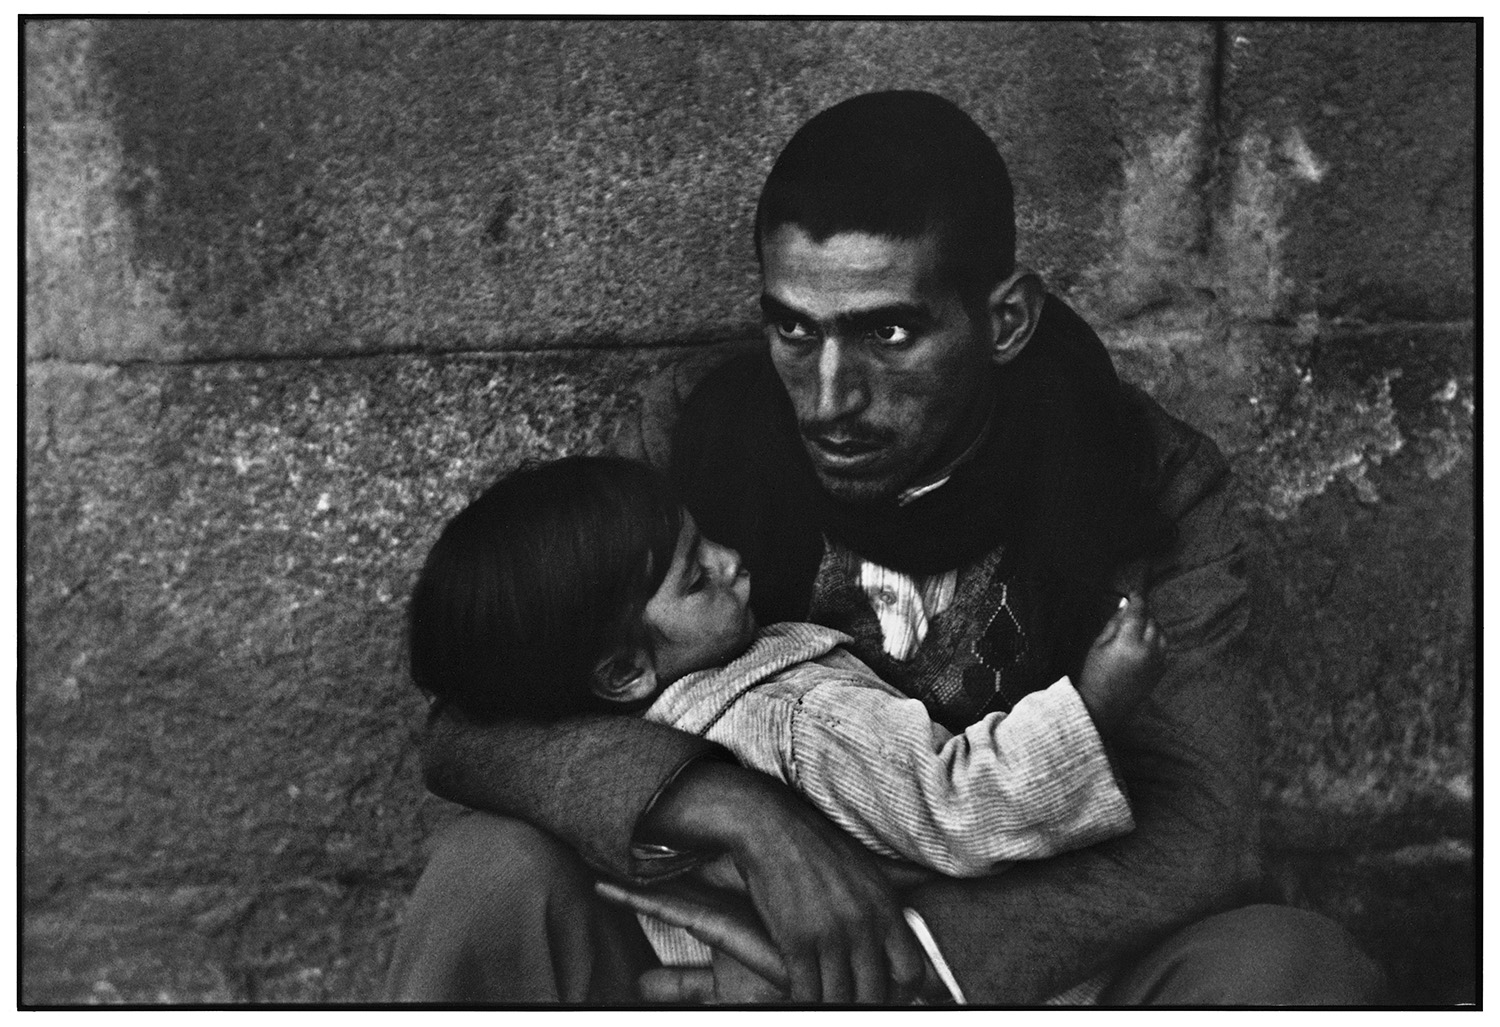 Classic Photography by Henri Cartier-Bresson